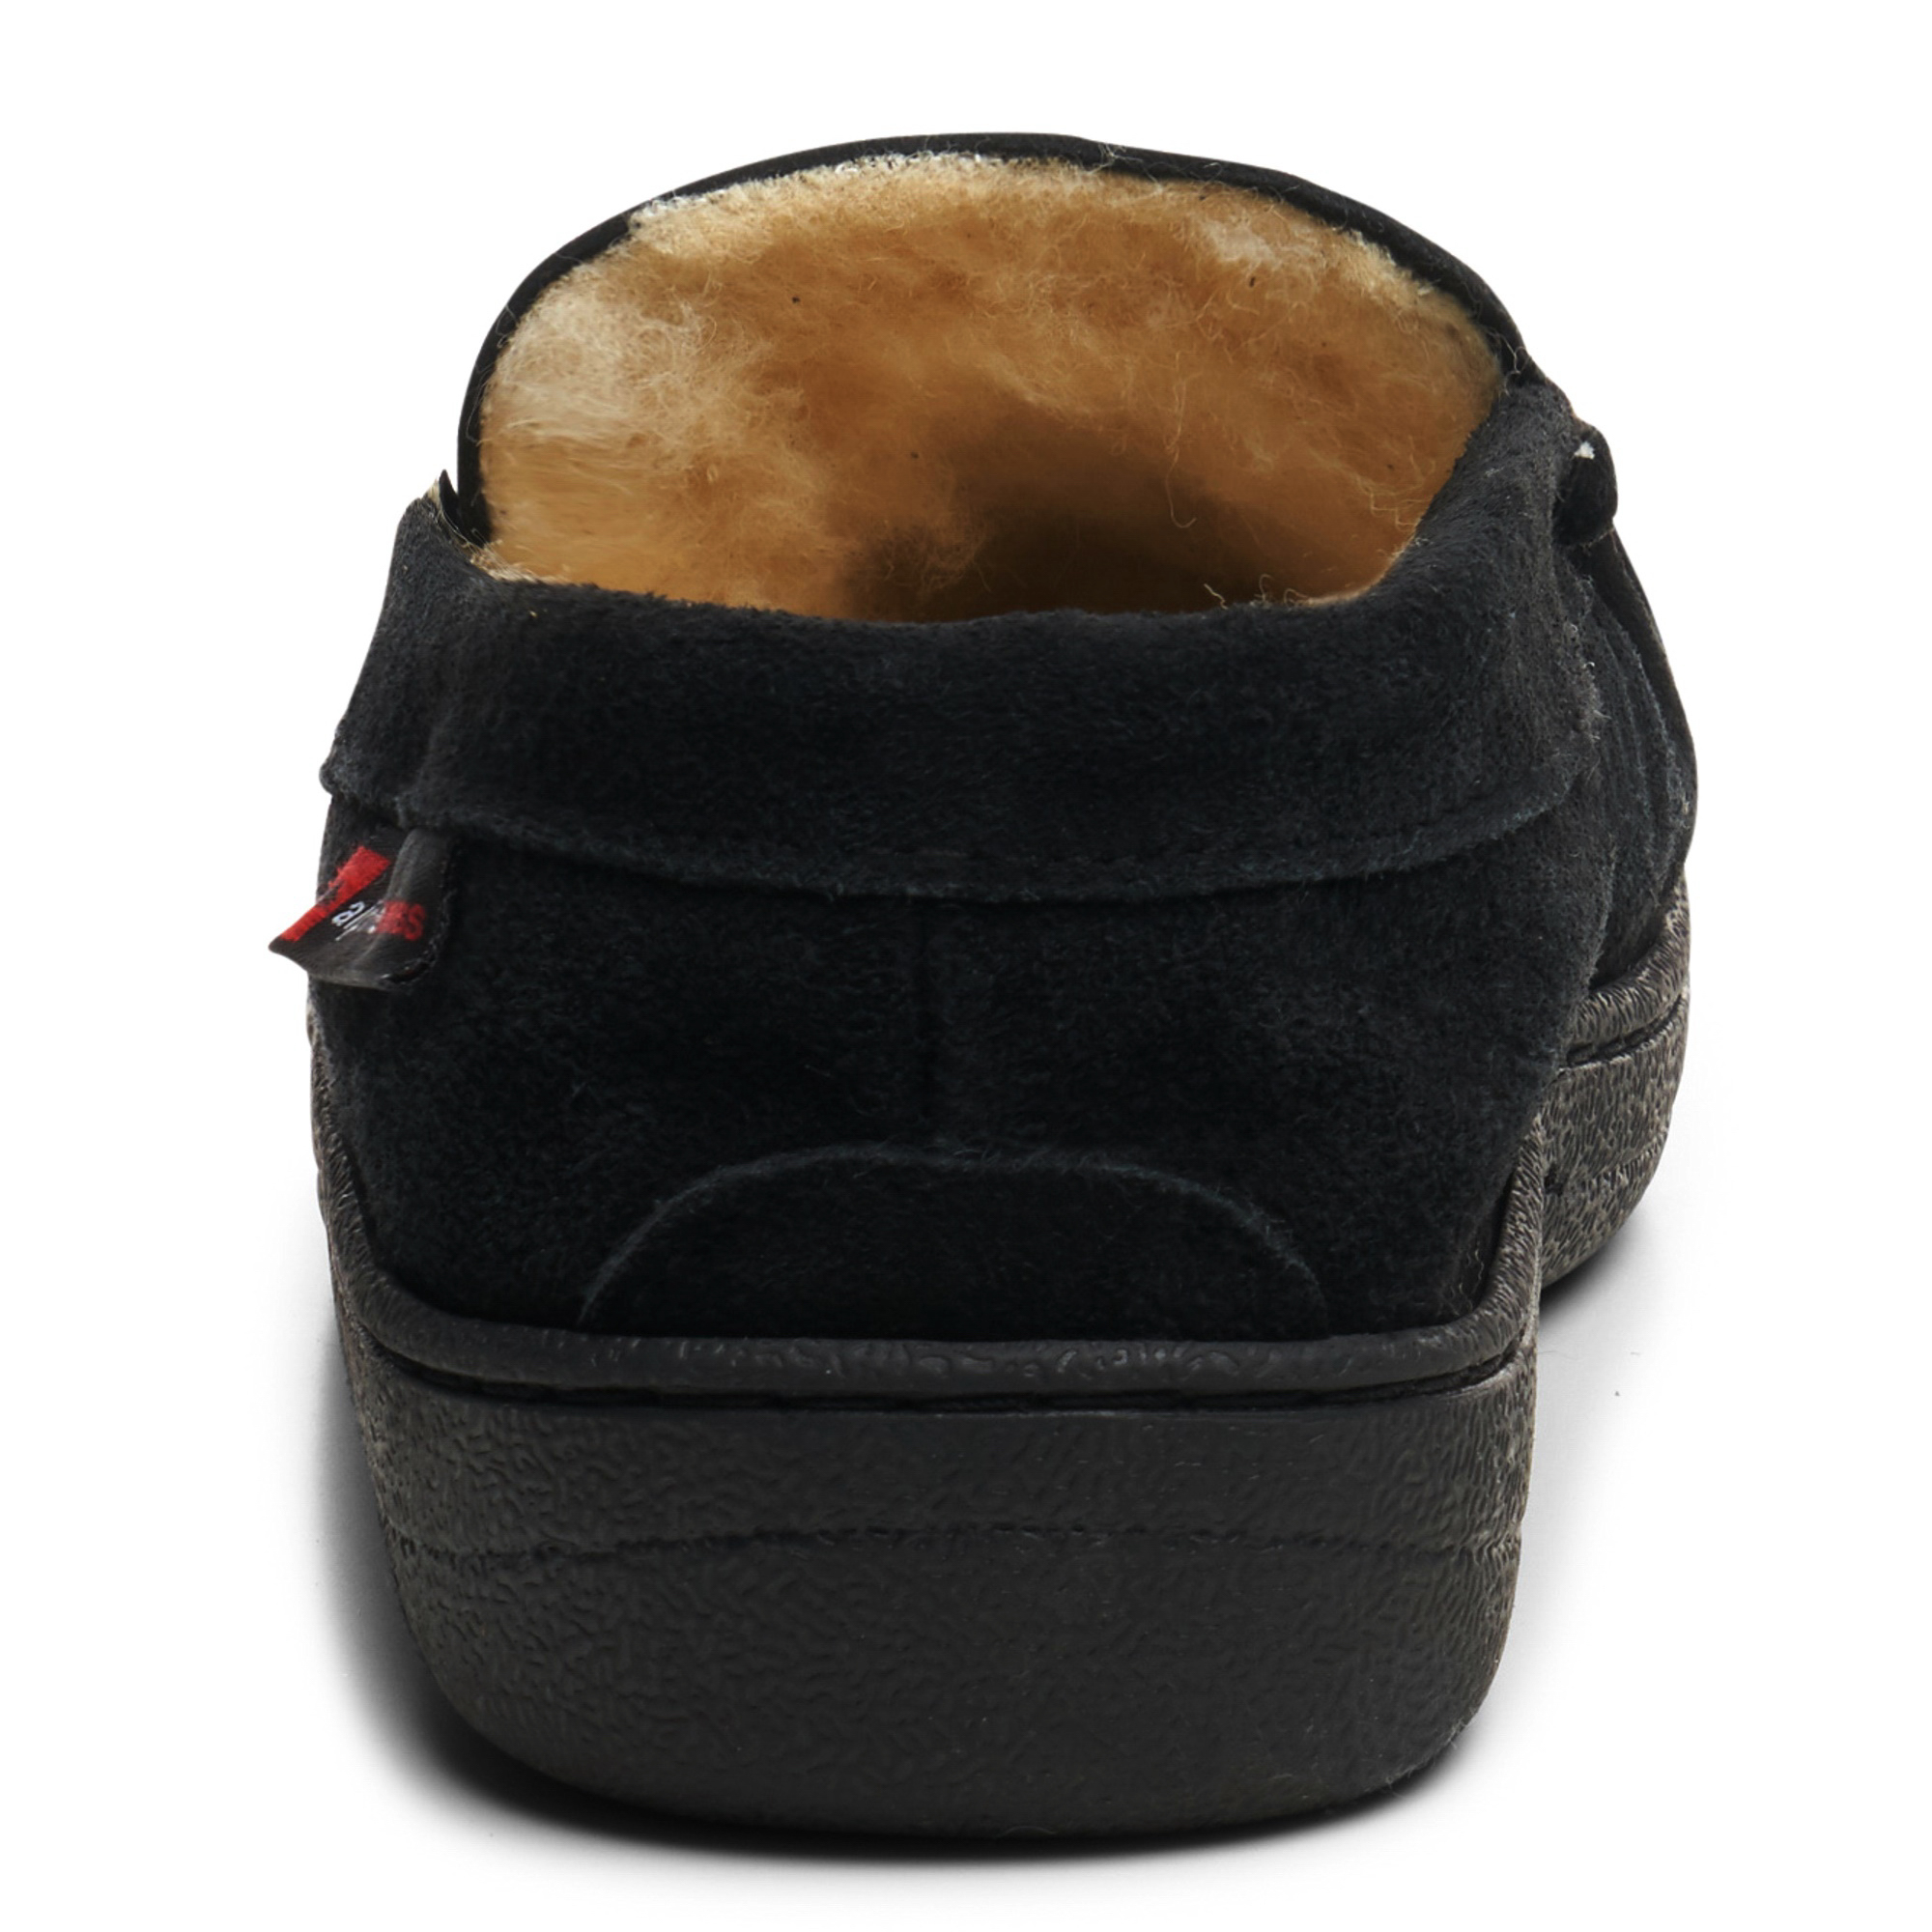 Alpine-Swiss-Yukon-Mens-Suede-Shearling-Moccasin-Slippers-Moc-Toe-Slip-On-Shoes thumbnail 16